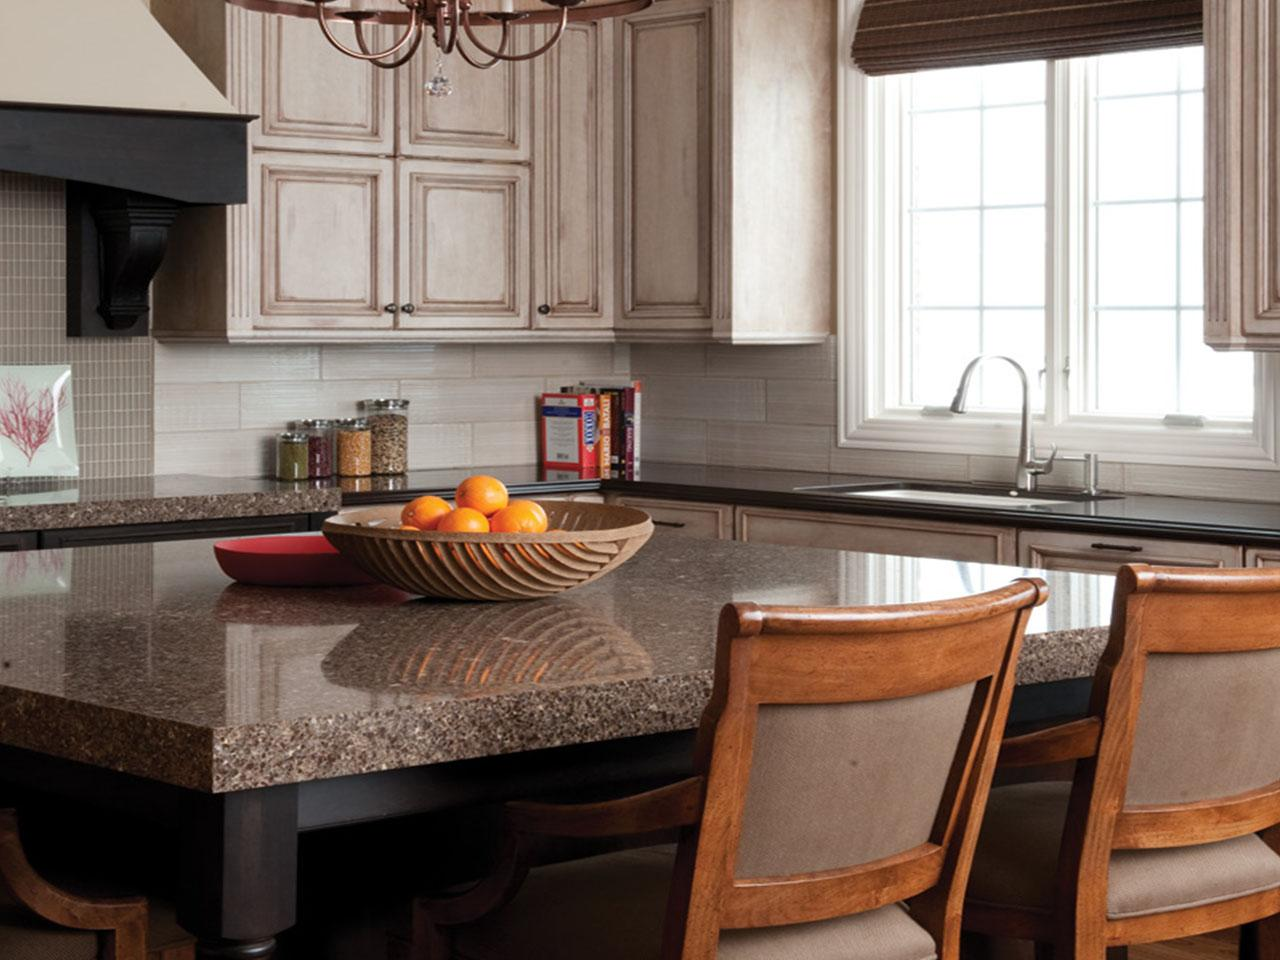 Replace Your Outdated Countertops